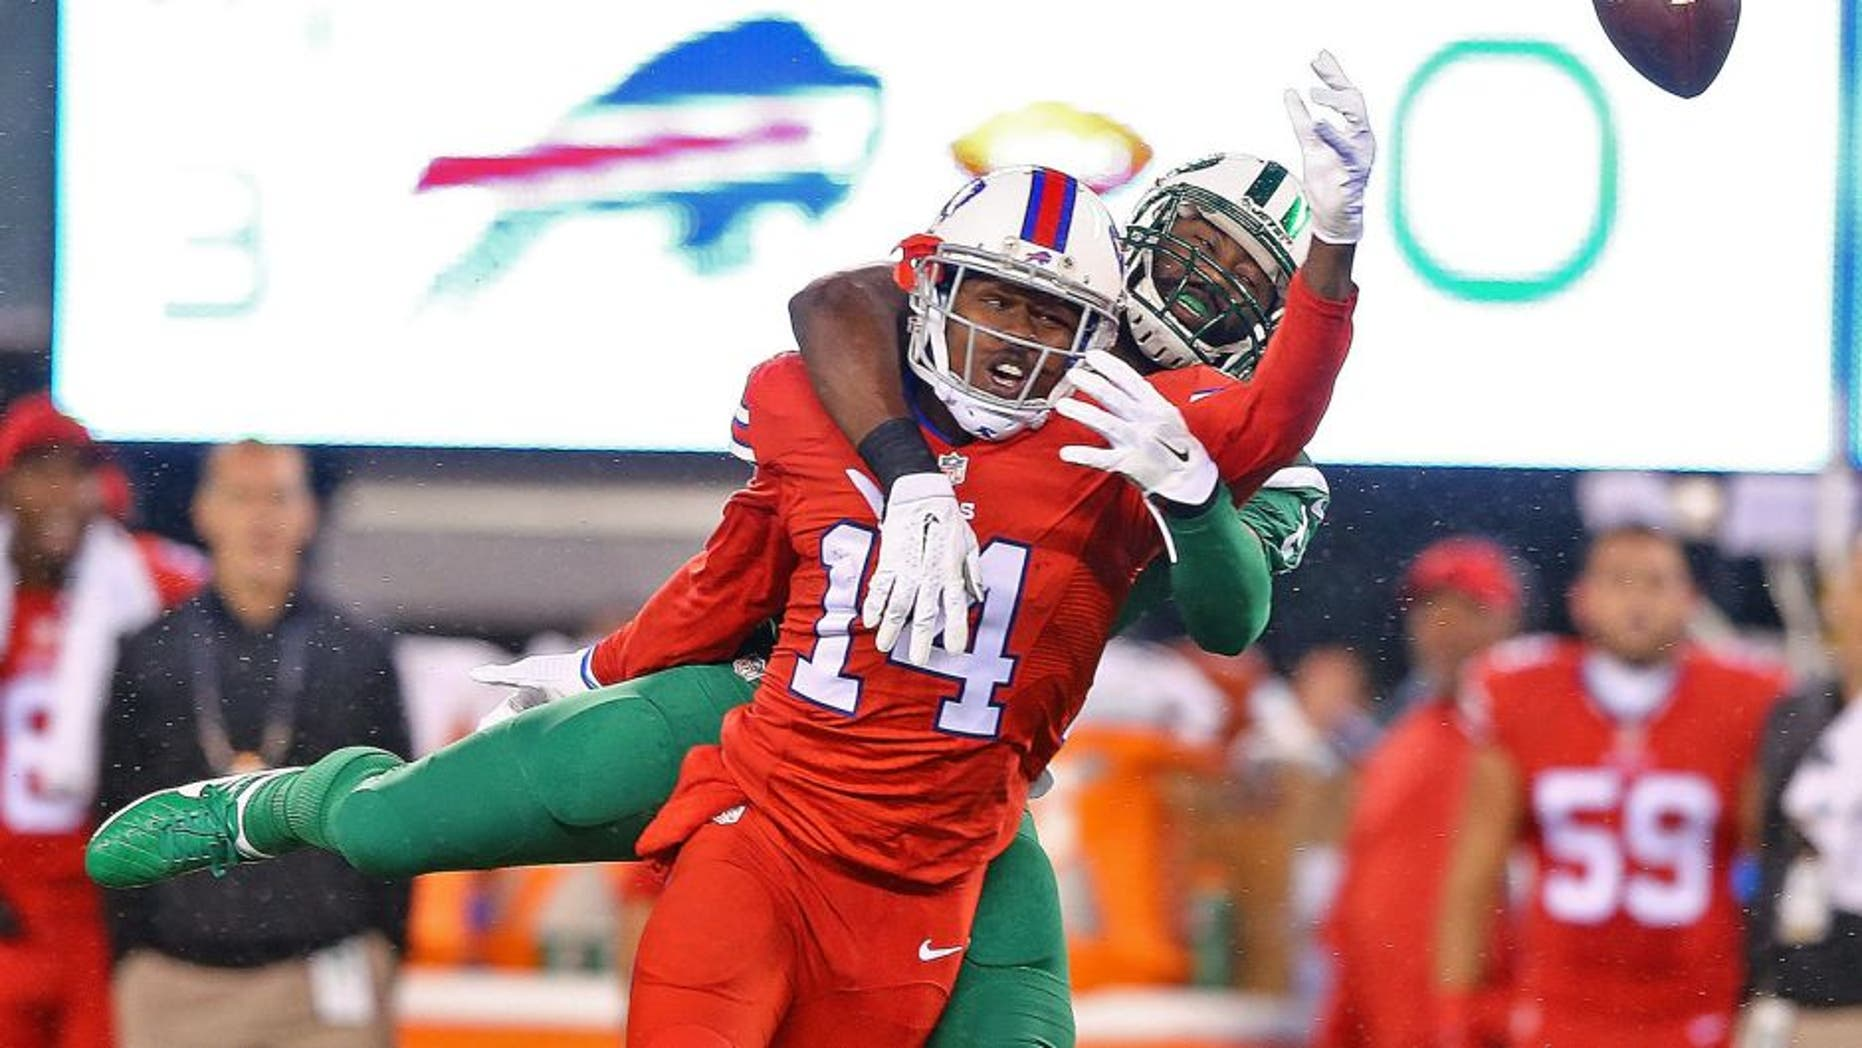 EAST RUTHERFORD, NJ - NOVEMBER 12: Darrelle Revis #24 of the New York Jets breaks up a pass intended for Sammy Watkins #14 of the Buffalo Bills during the first quarter at MetLife Stadium on November 12, 2015 in East Rutherford, New Jersey. (Photo by Elsa/Getty Images)